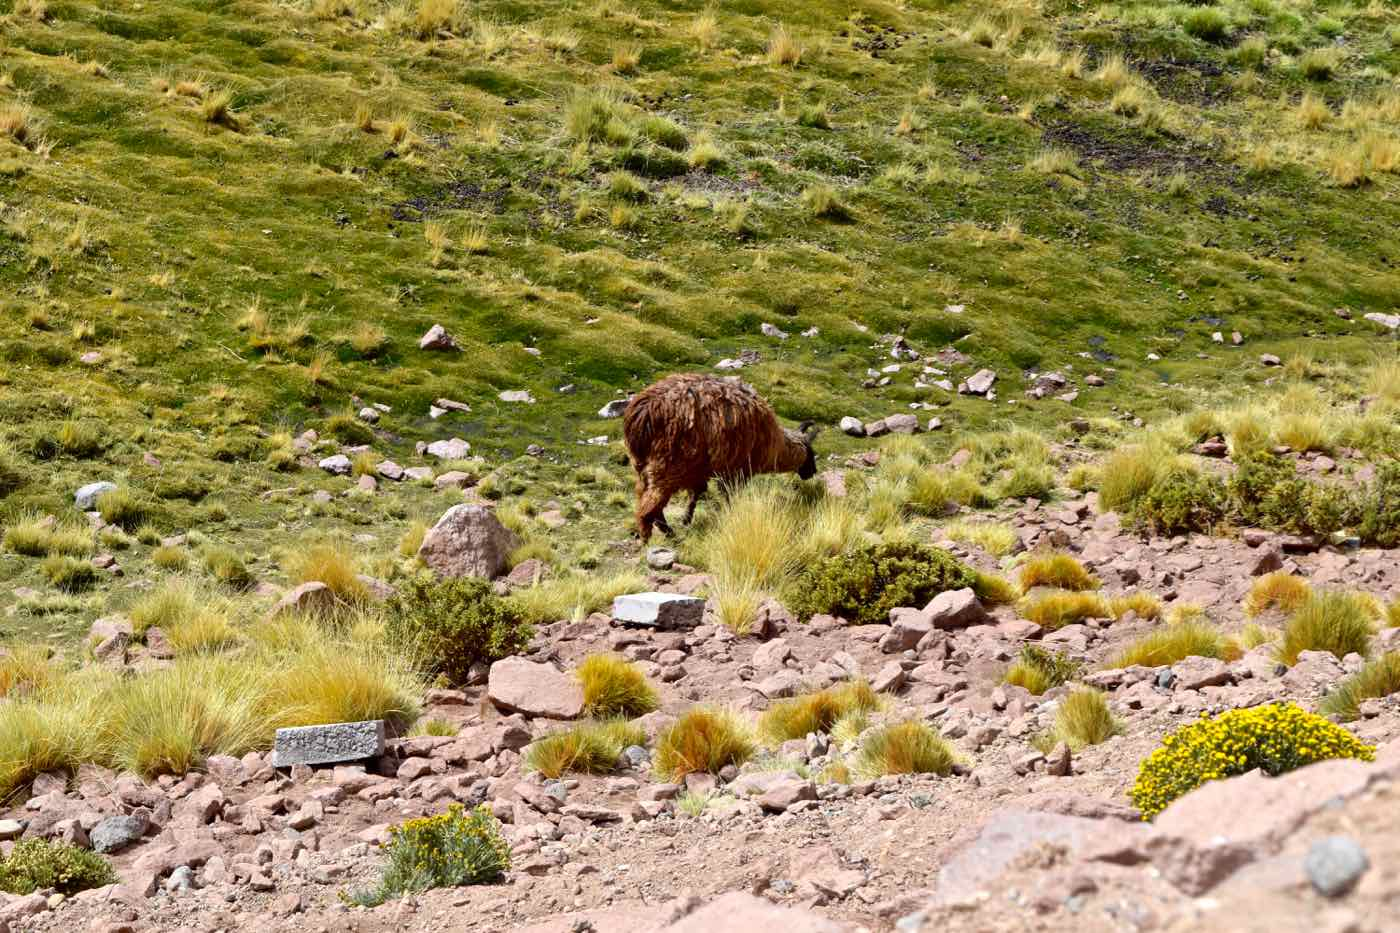 Wildlife on way back from El Tatio Geysers, Chile